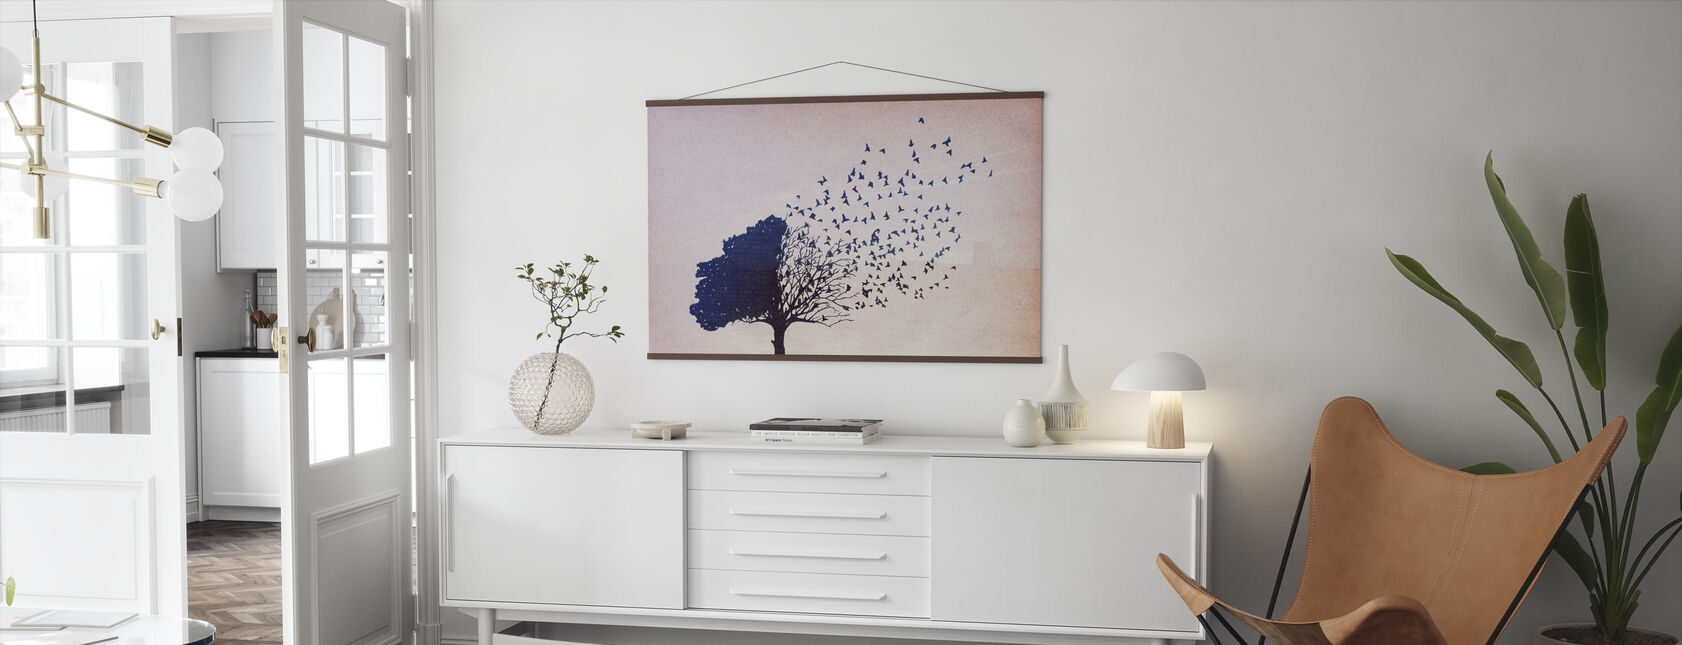 Birds Leaves - Poster - Living Room